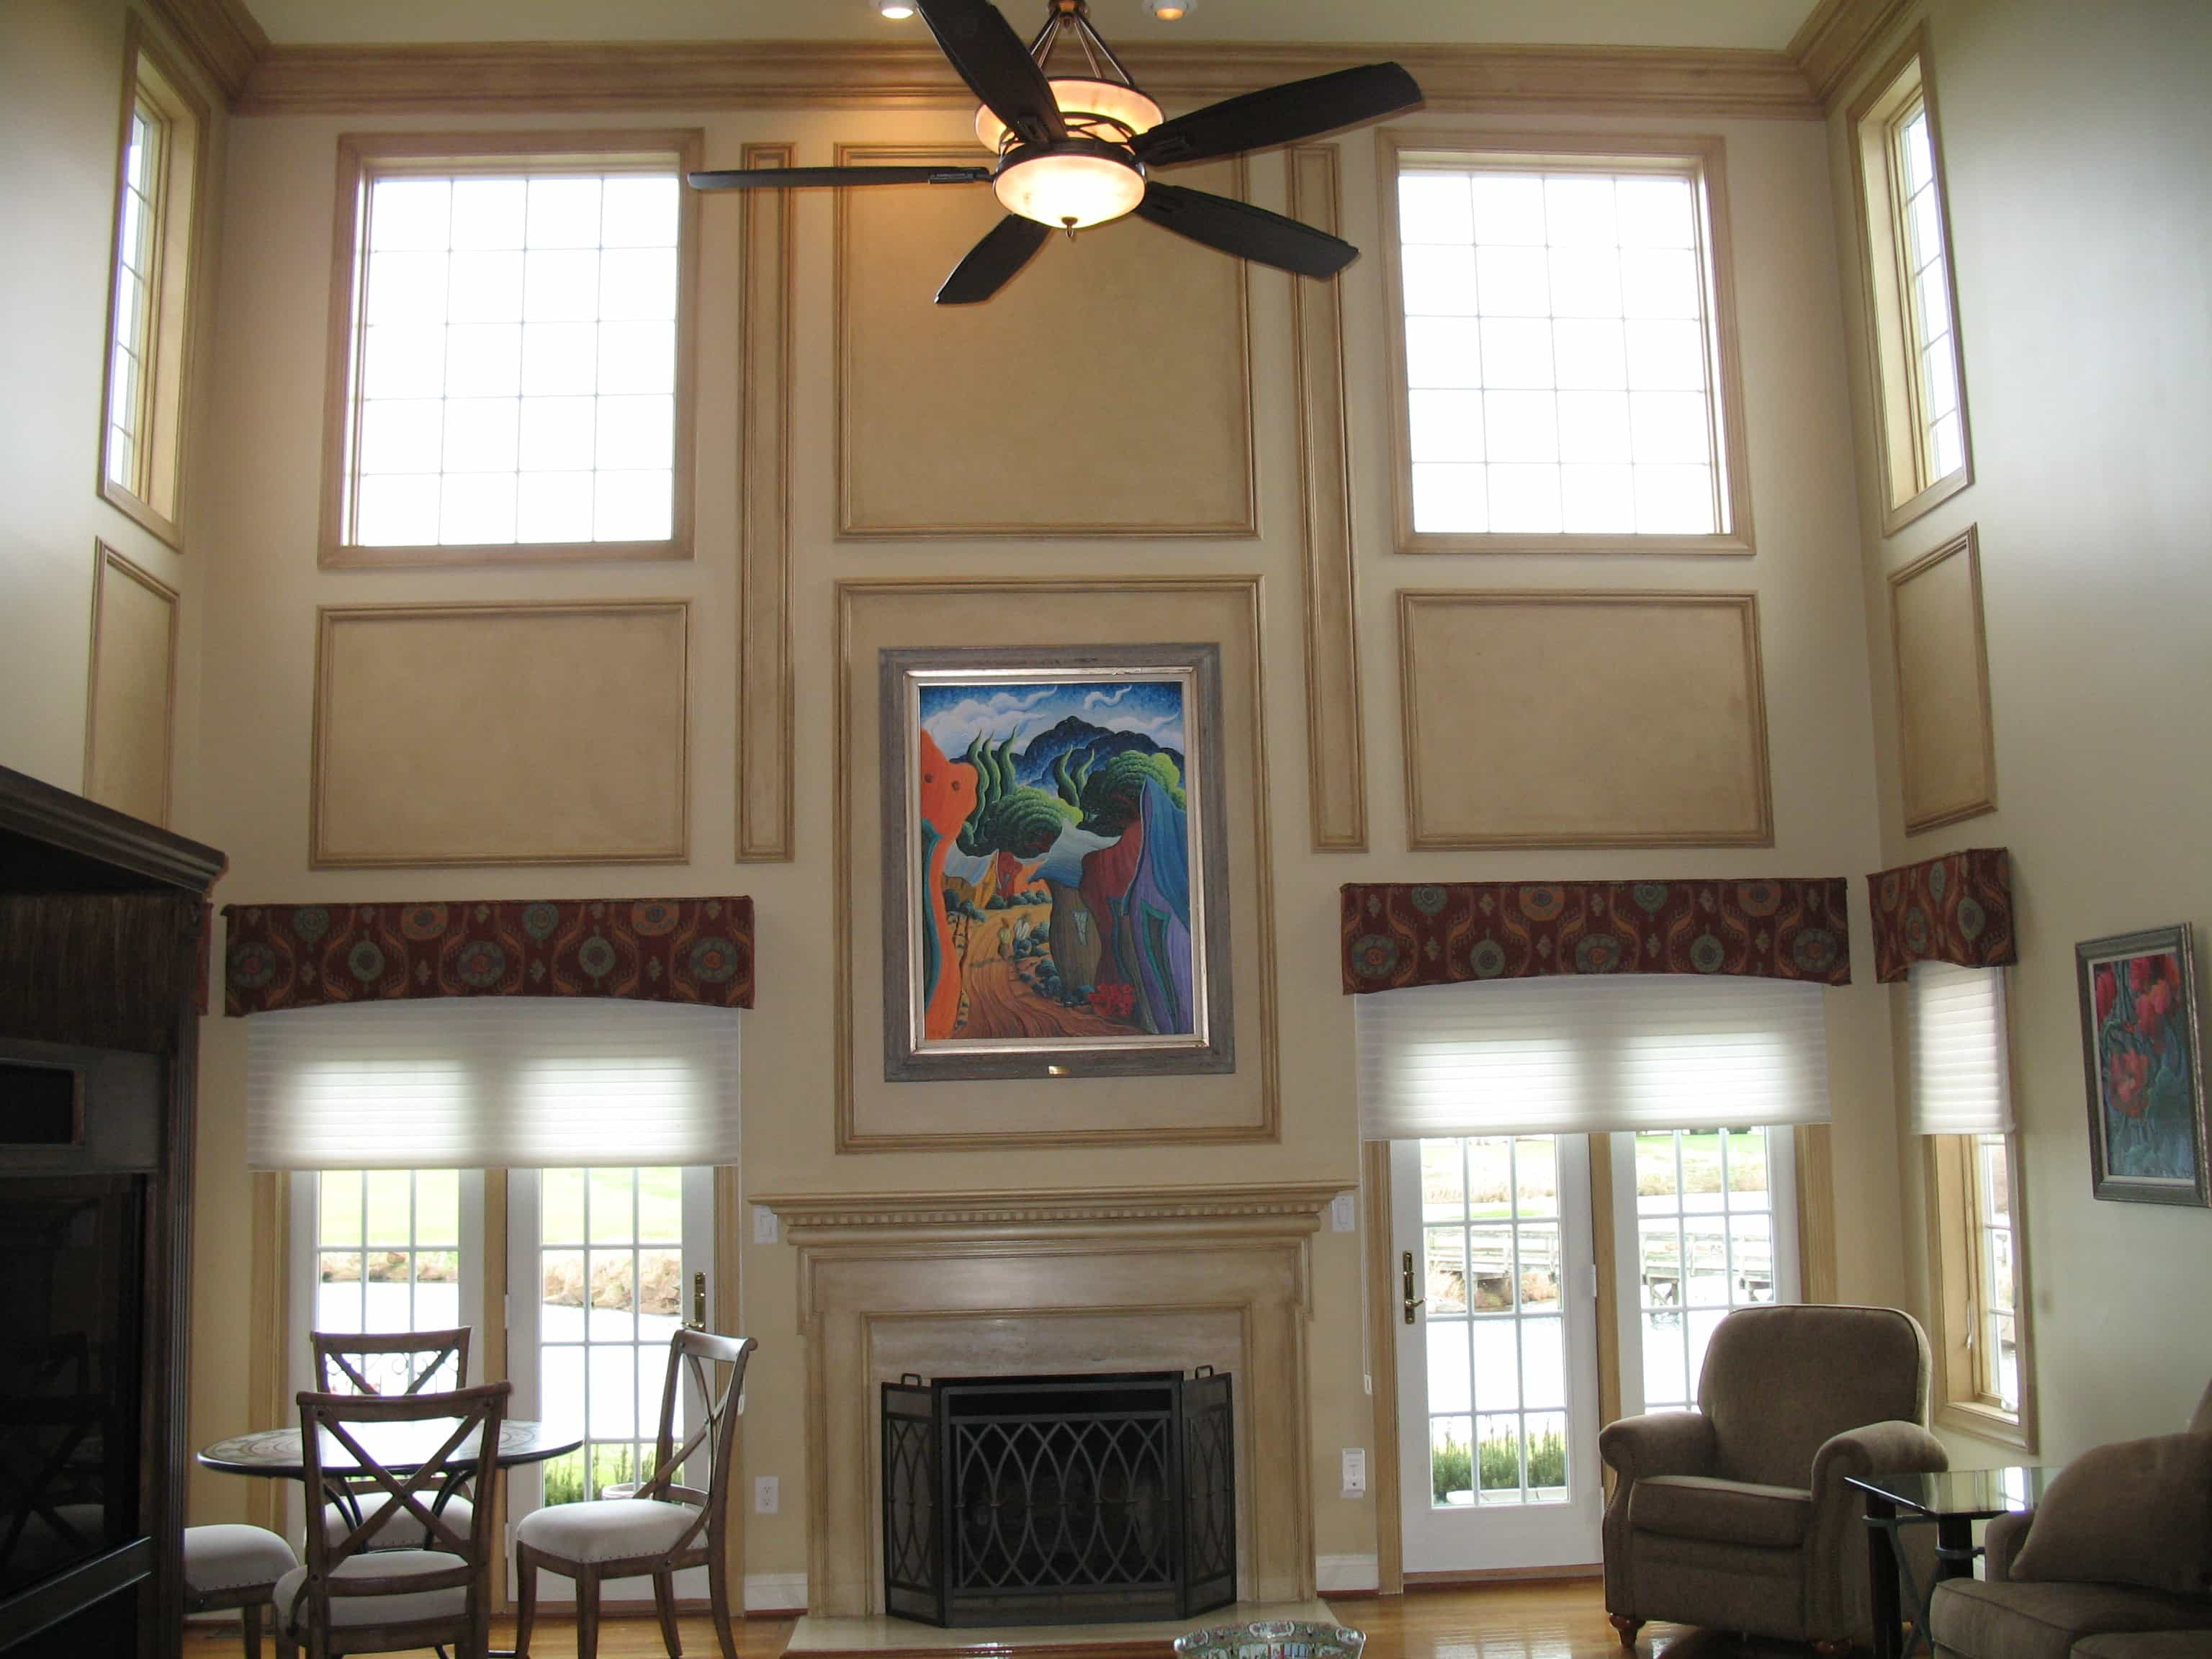 room with high ceiling after improvements are made